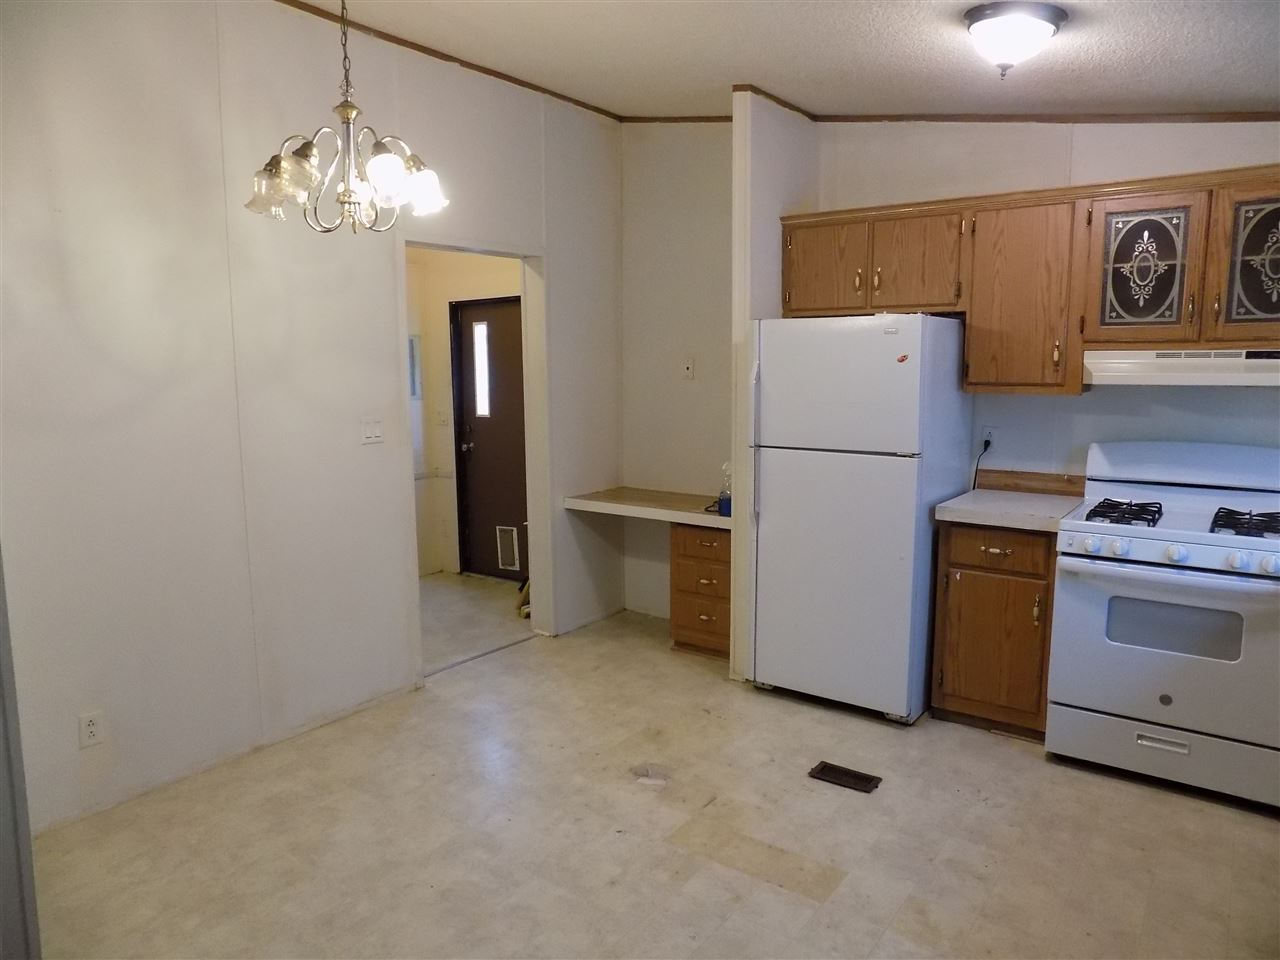 For Sale: 360 S WICHITA ST, Benton KS